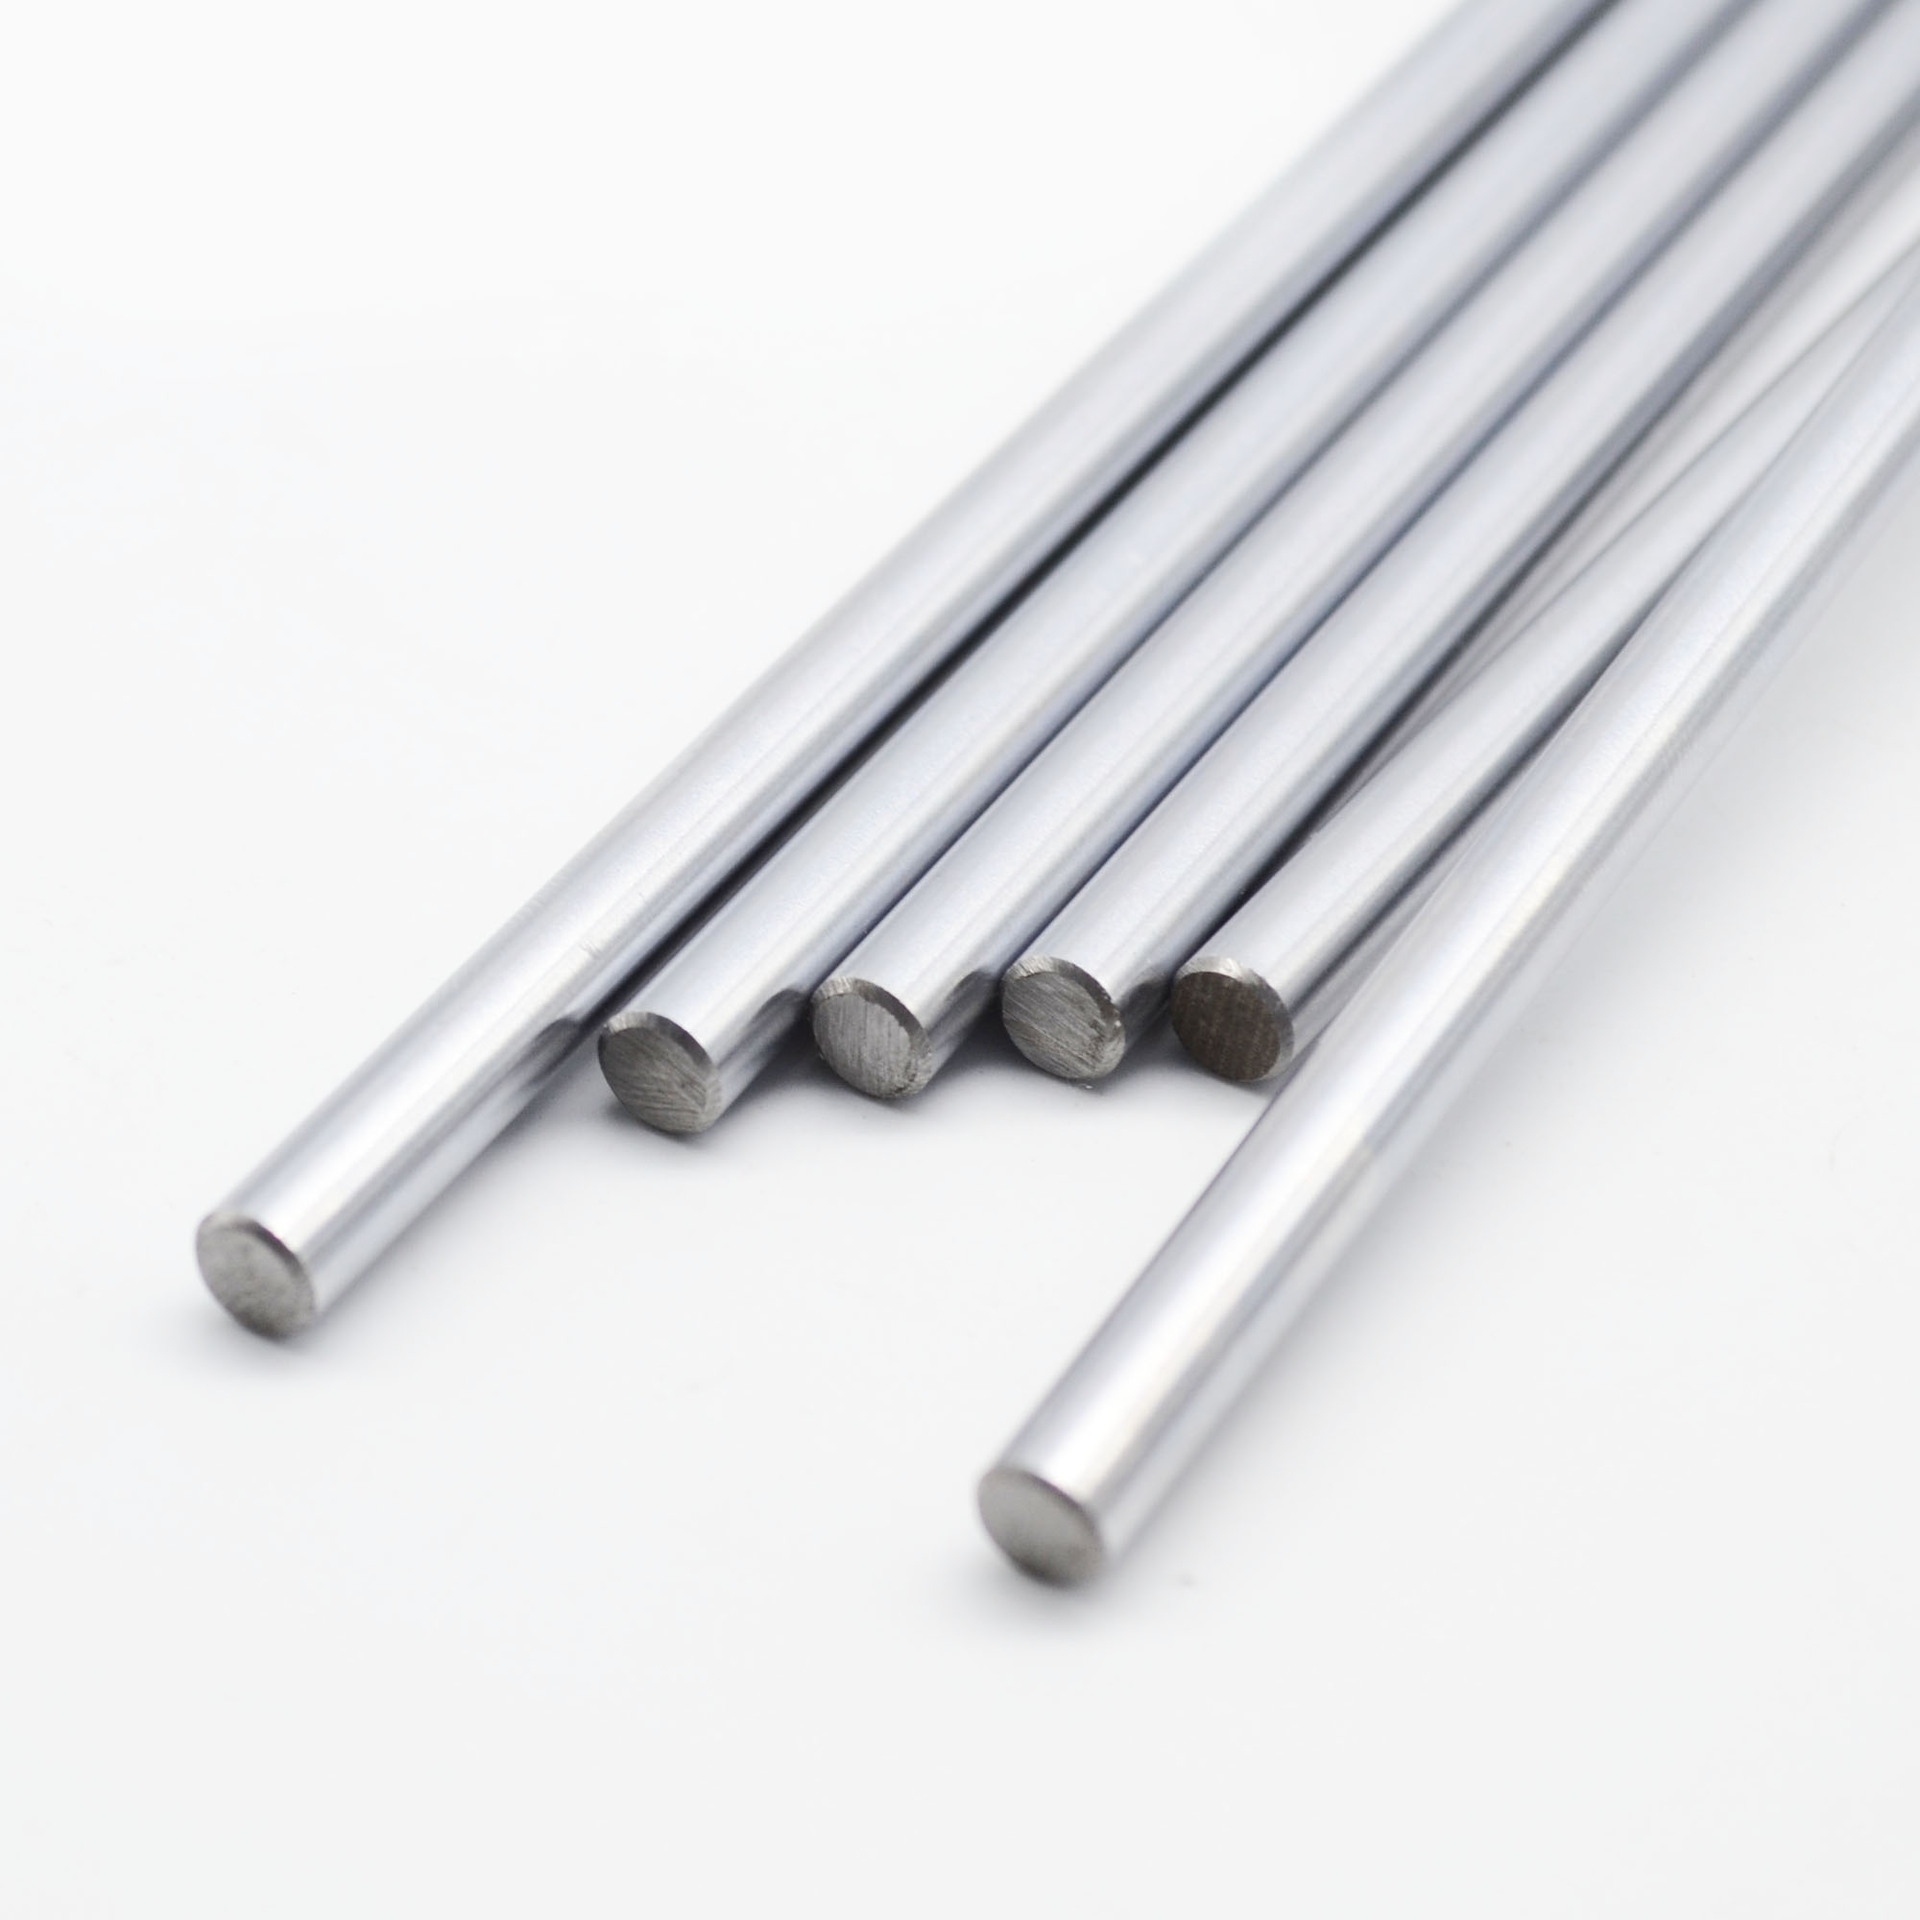 2pcs Diameter 8mm Chromed stainless steel Smooth Shaft Rod Optical Axis 200/300/350/400/500mm for prusa rod 3D Printer Parts CNC